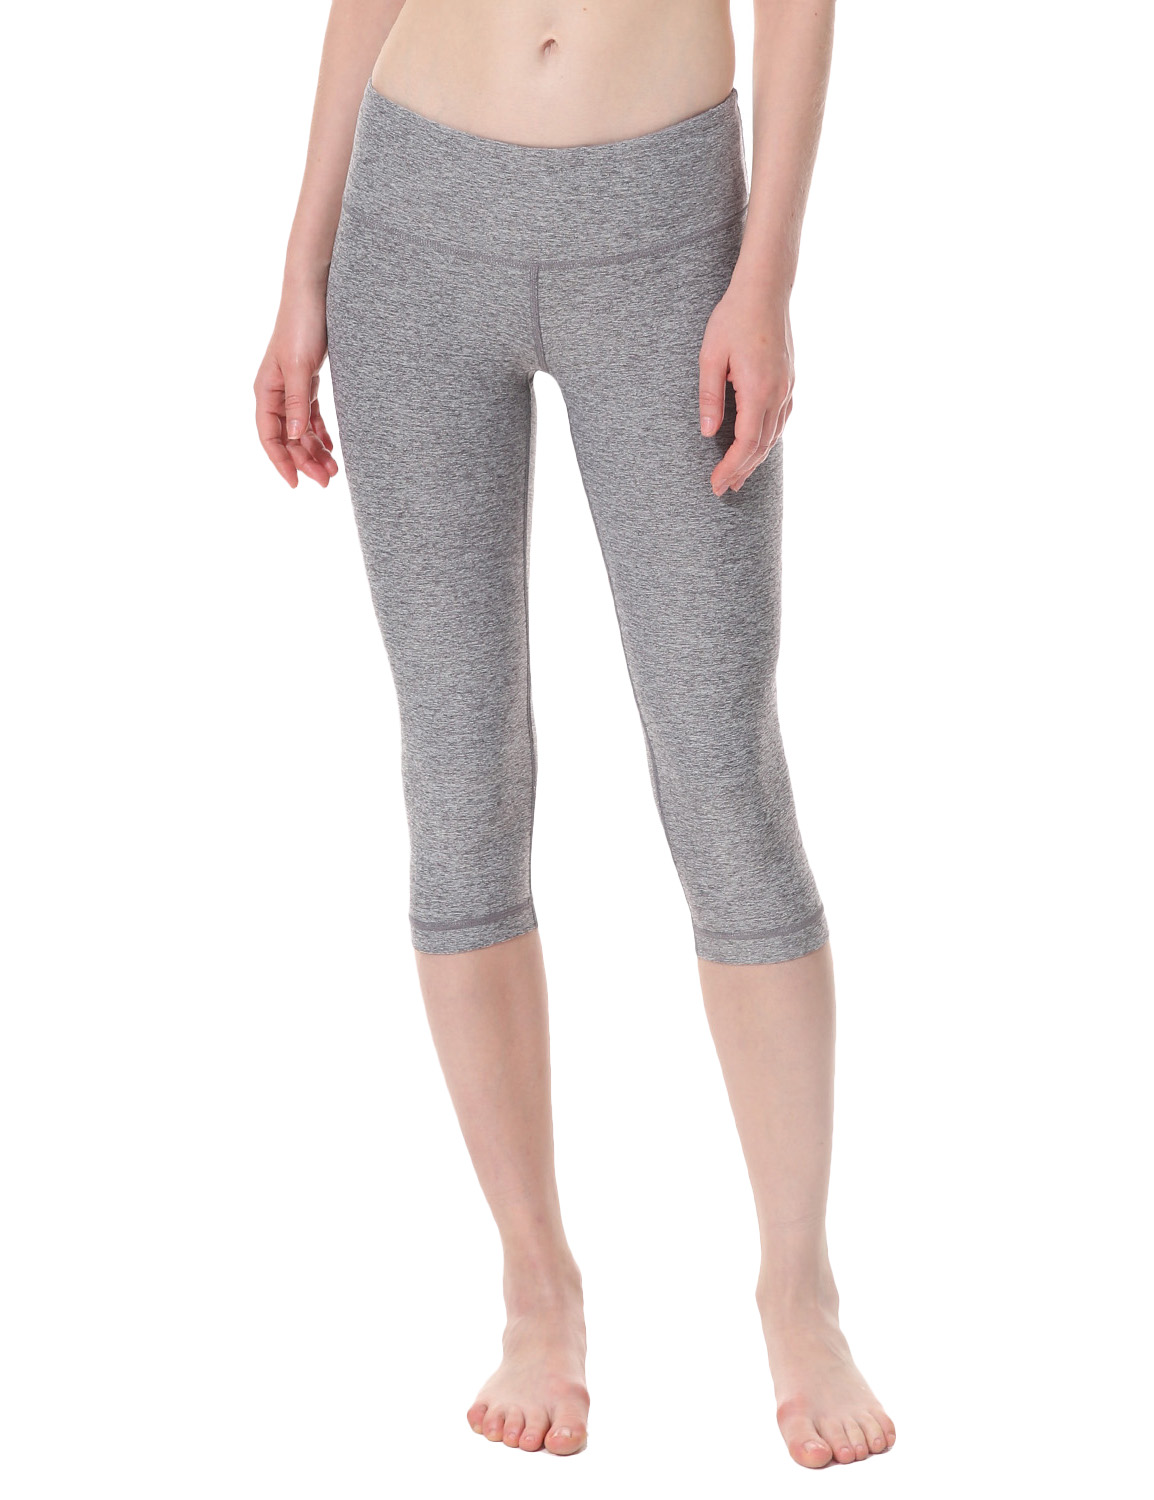 Women's Running Tights fit Workout Capris Cropped Yoga Pants with Pockets inc new solid white women s size 0 knitted capris cropped pants $59 056